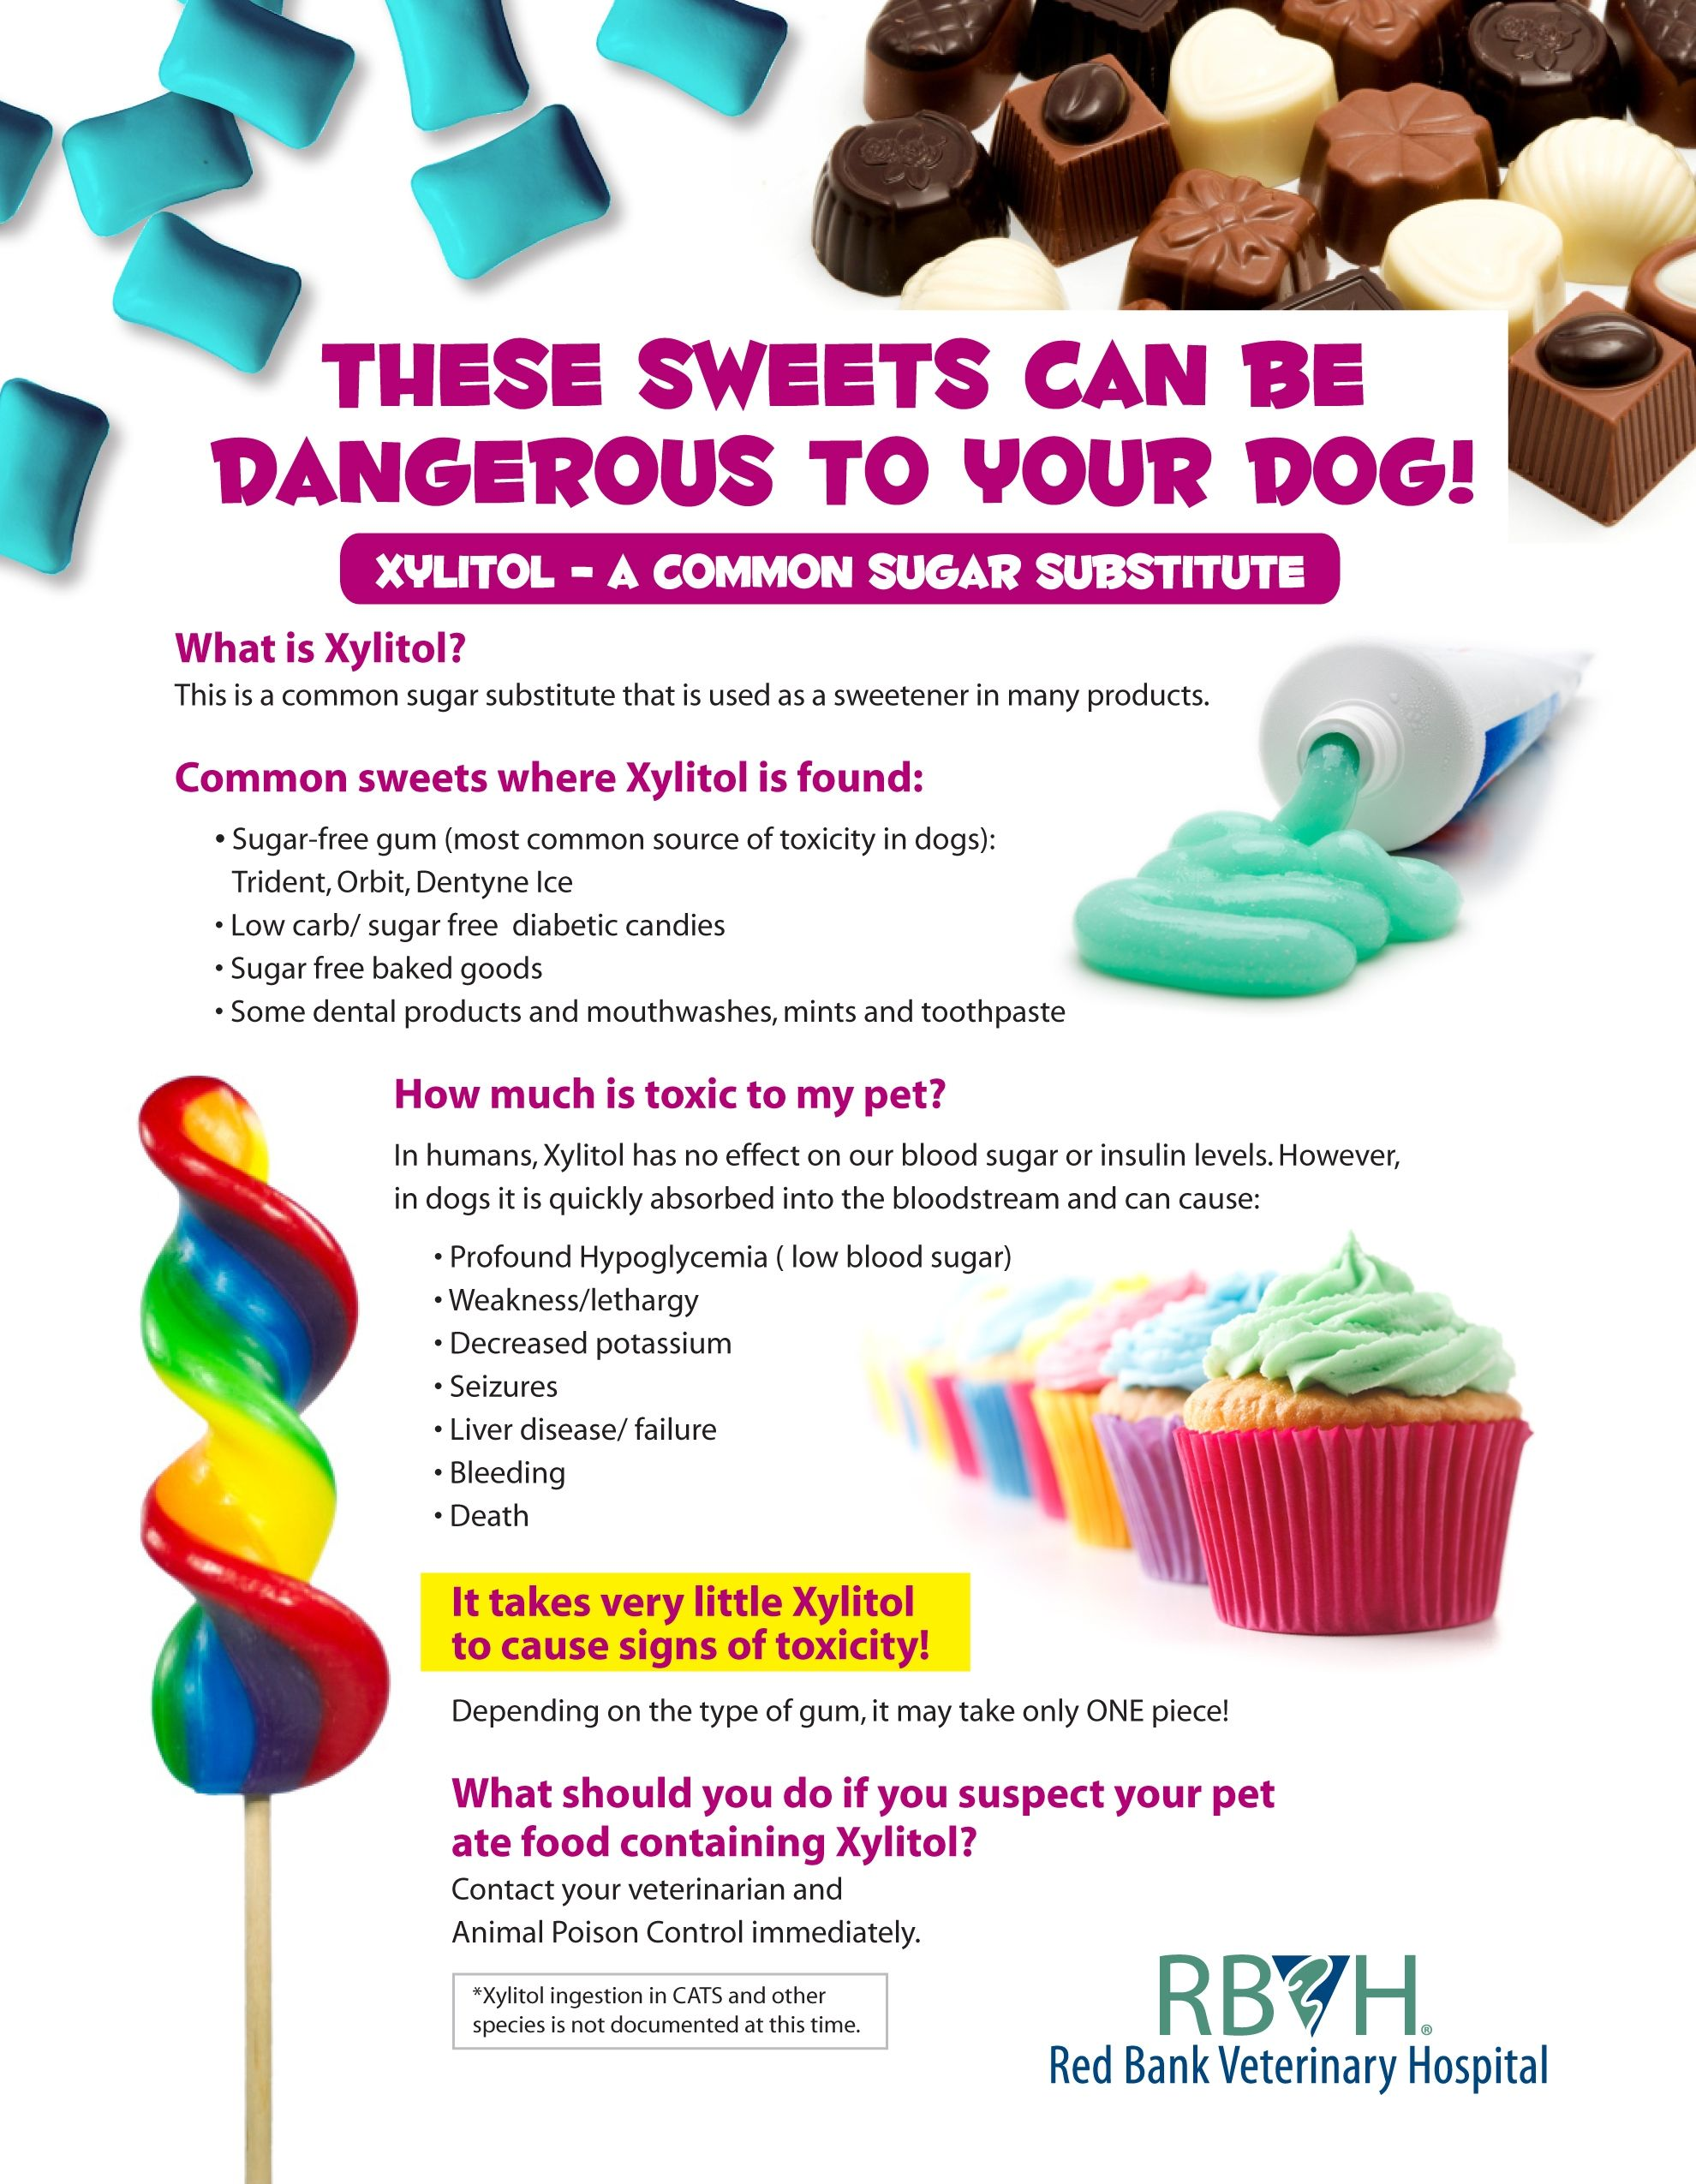 Xylitol Is An Artificial Sweetener That Must Be Kept Away From